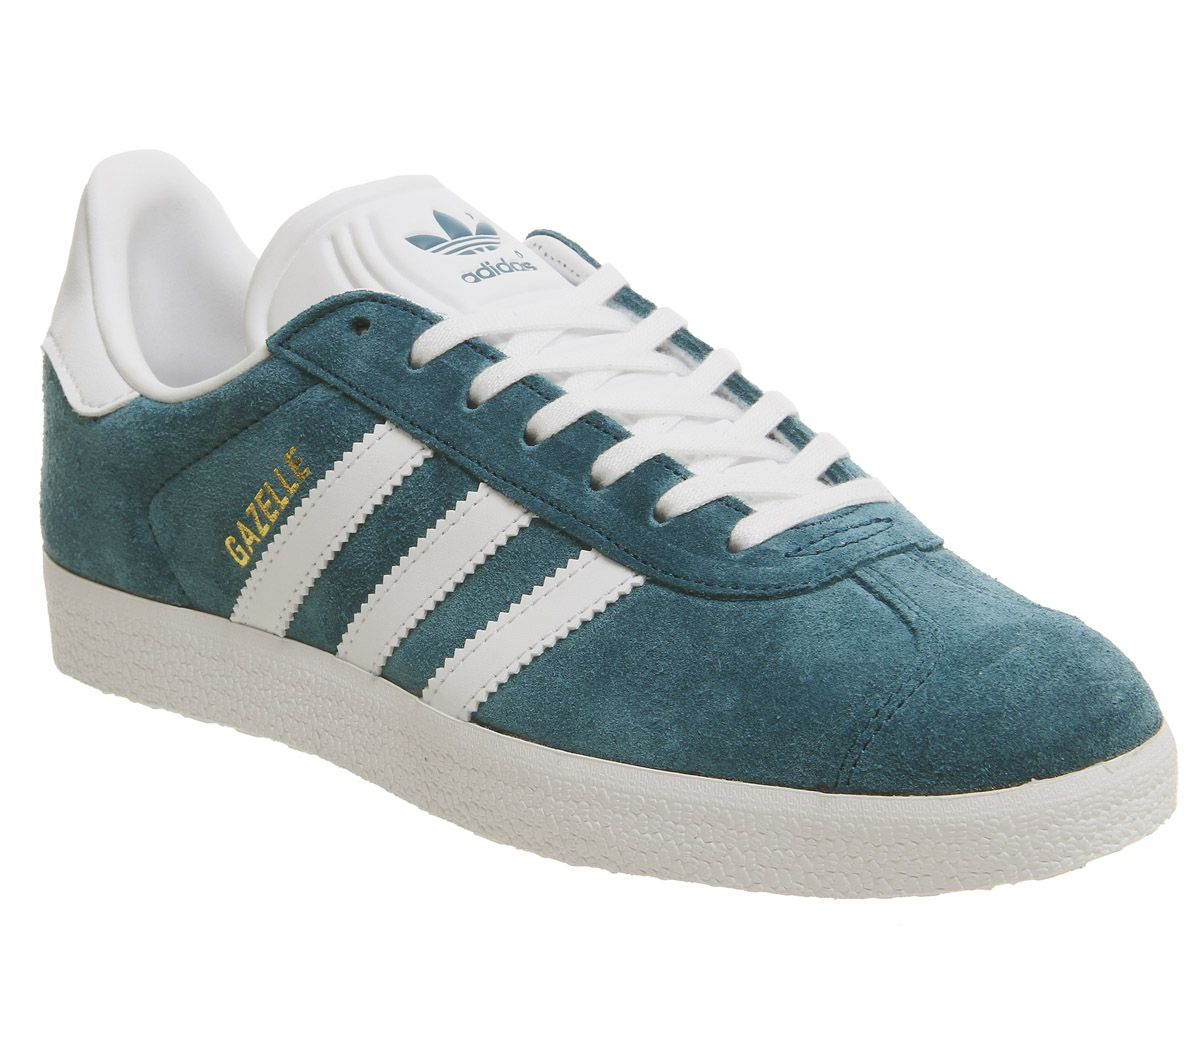 1d8ffe93838c6 adidas Gazelle Trainers Petrol Night - Unisex Sports